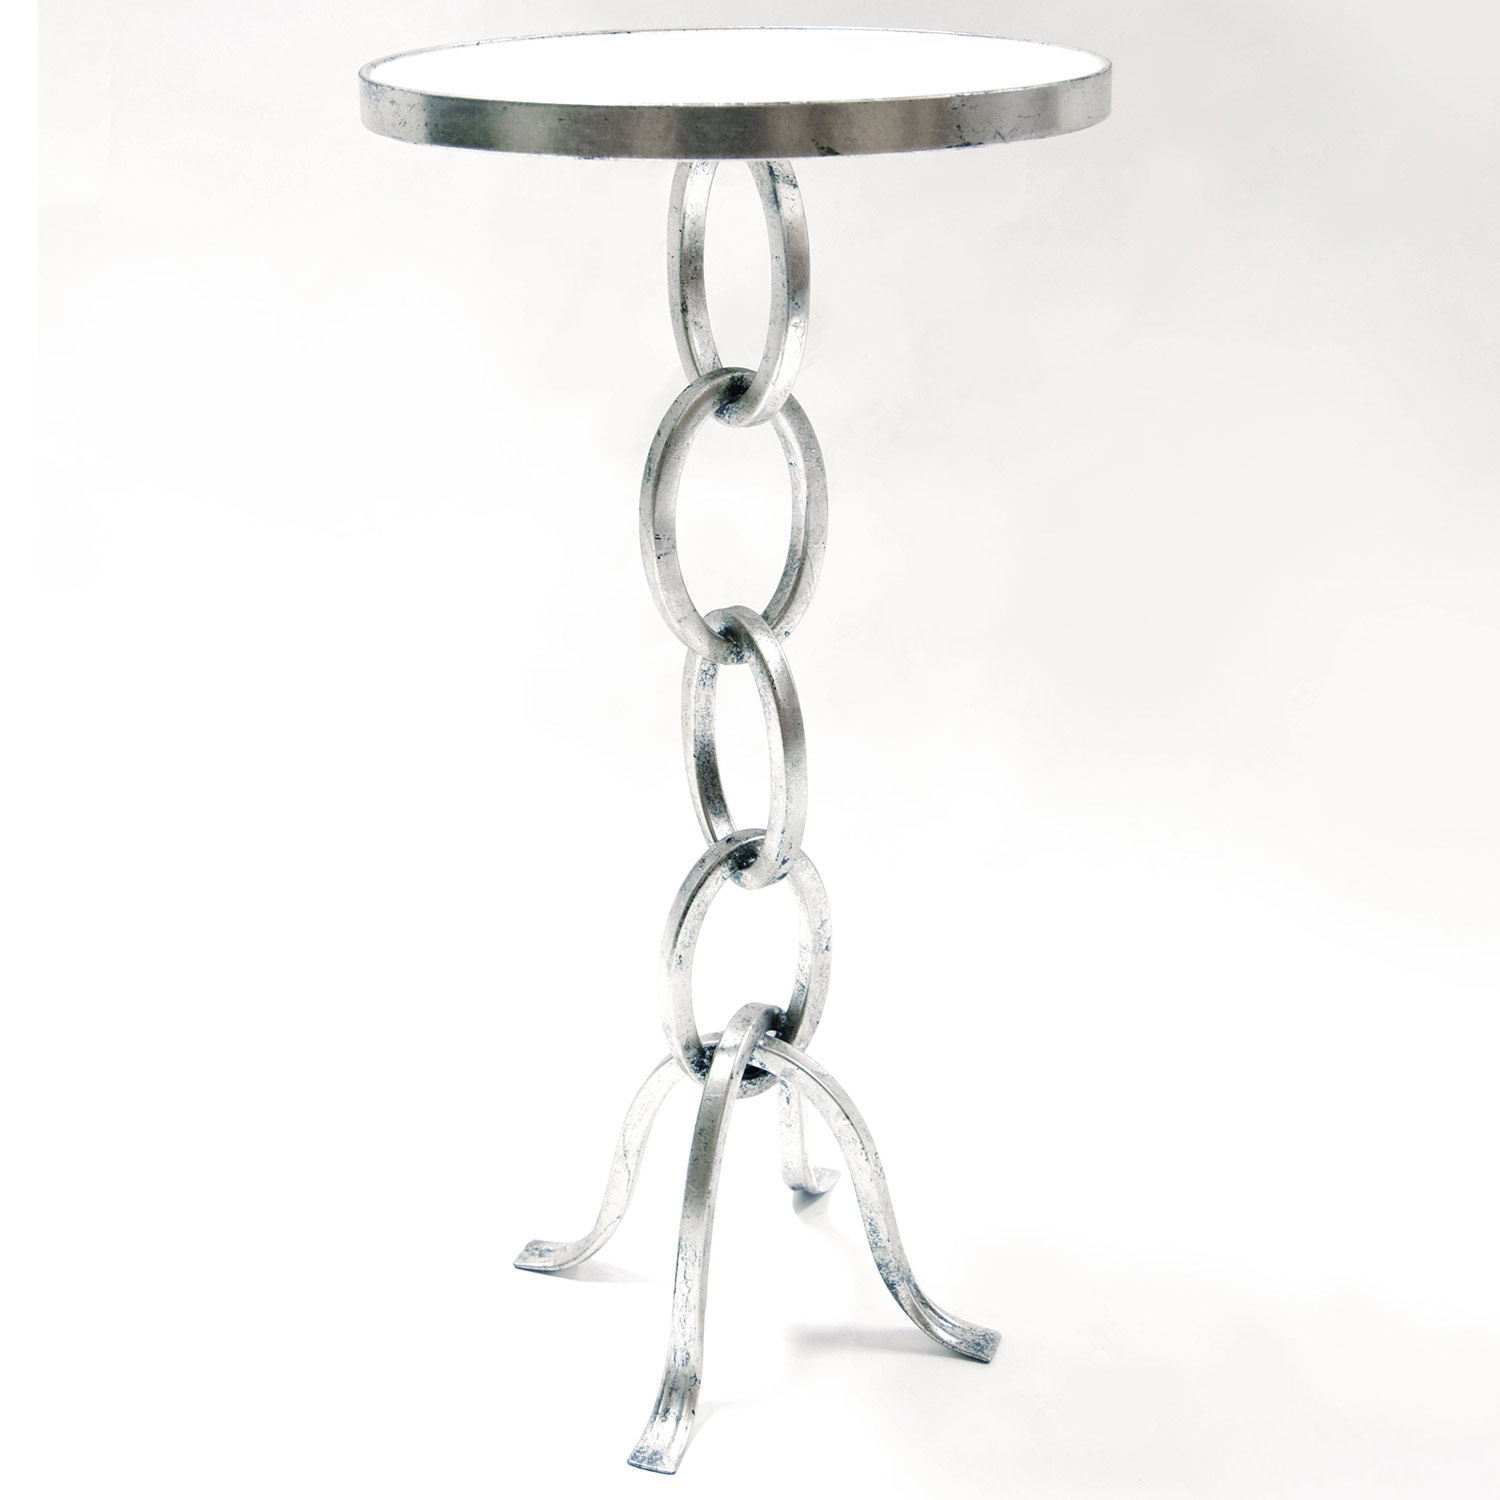 prima design source stacked link accent table silver leaf white marble small half moon butterfly lighting purple placemats and napkins hayden furniture west elm carved wood coffee